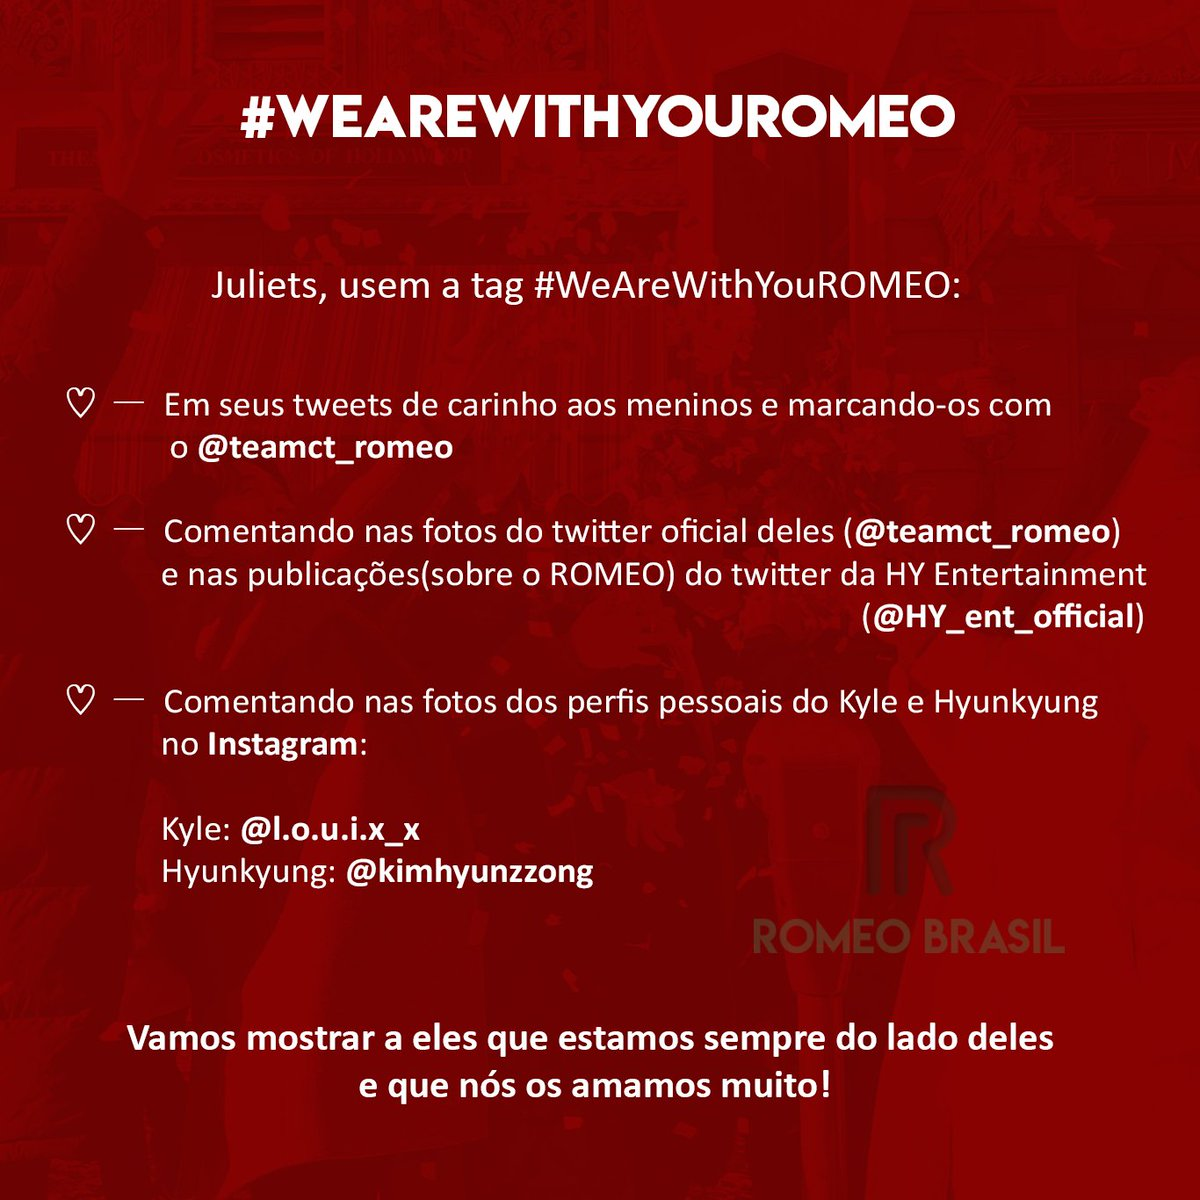 [ #PROJETO ] Juliets, usem a tag #WeAreWithYouROMEO:<br>http://pic.twitter.com/6ycEloYl2r